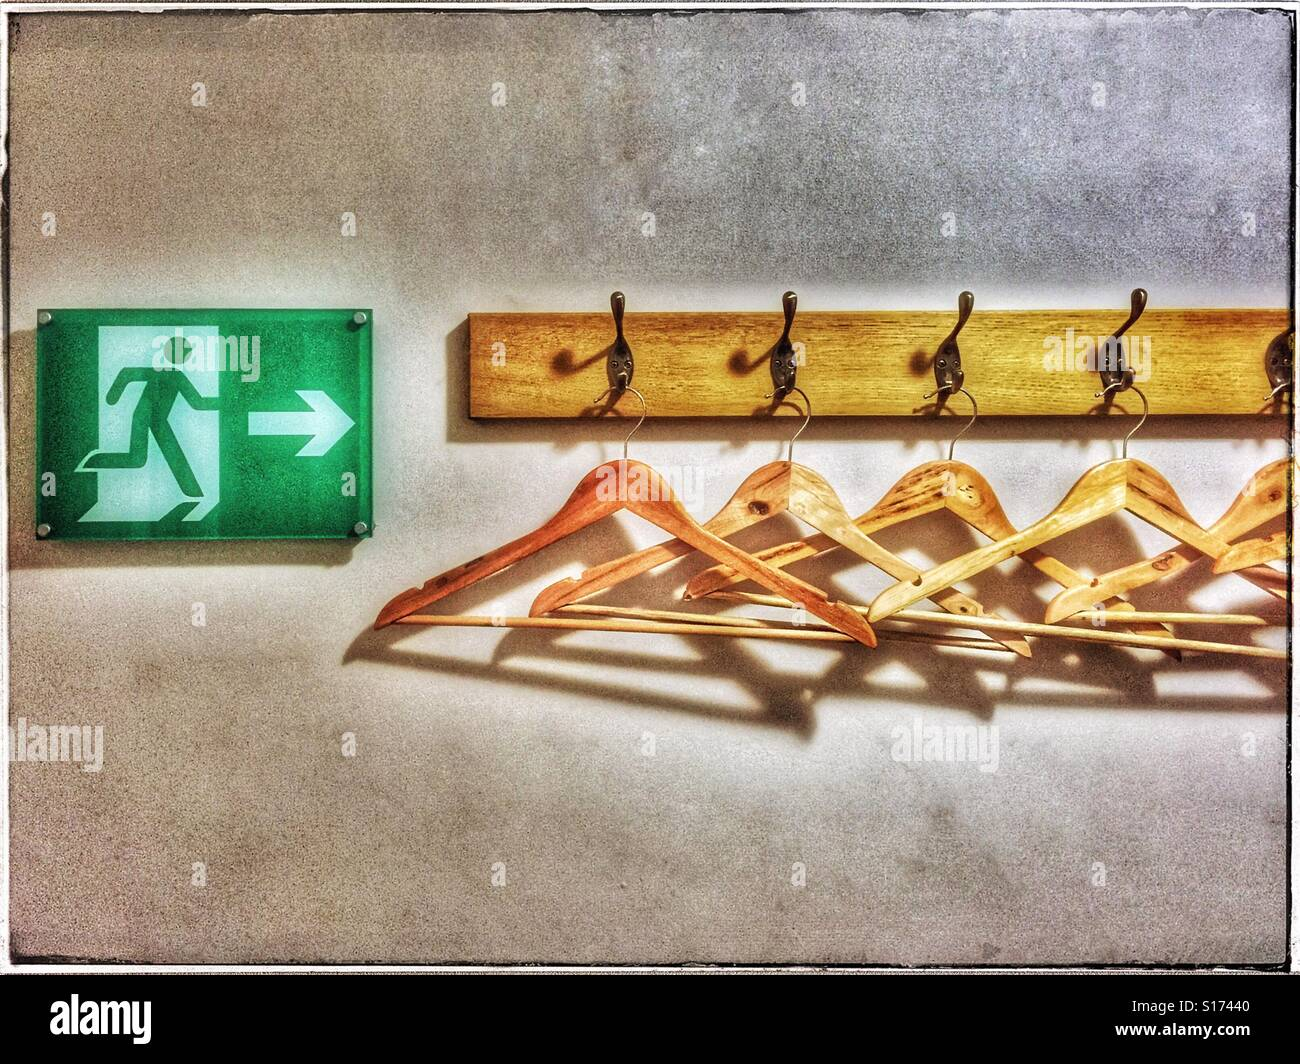 'In the unlikely event of an emergency evacuation, do not stop to collect your personal belongings. Instead, - Stock Image